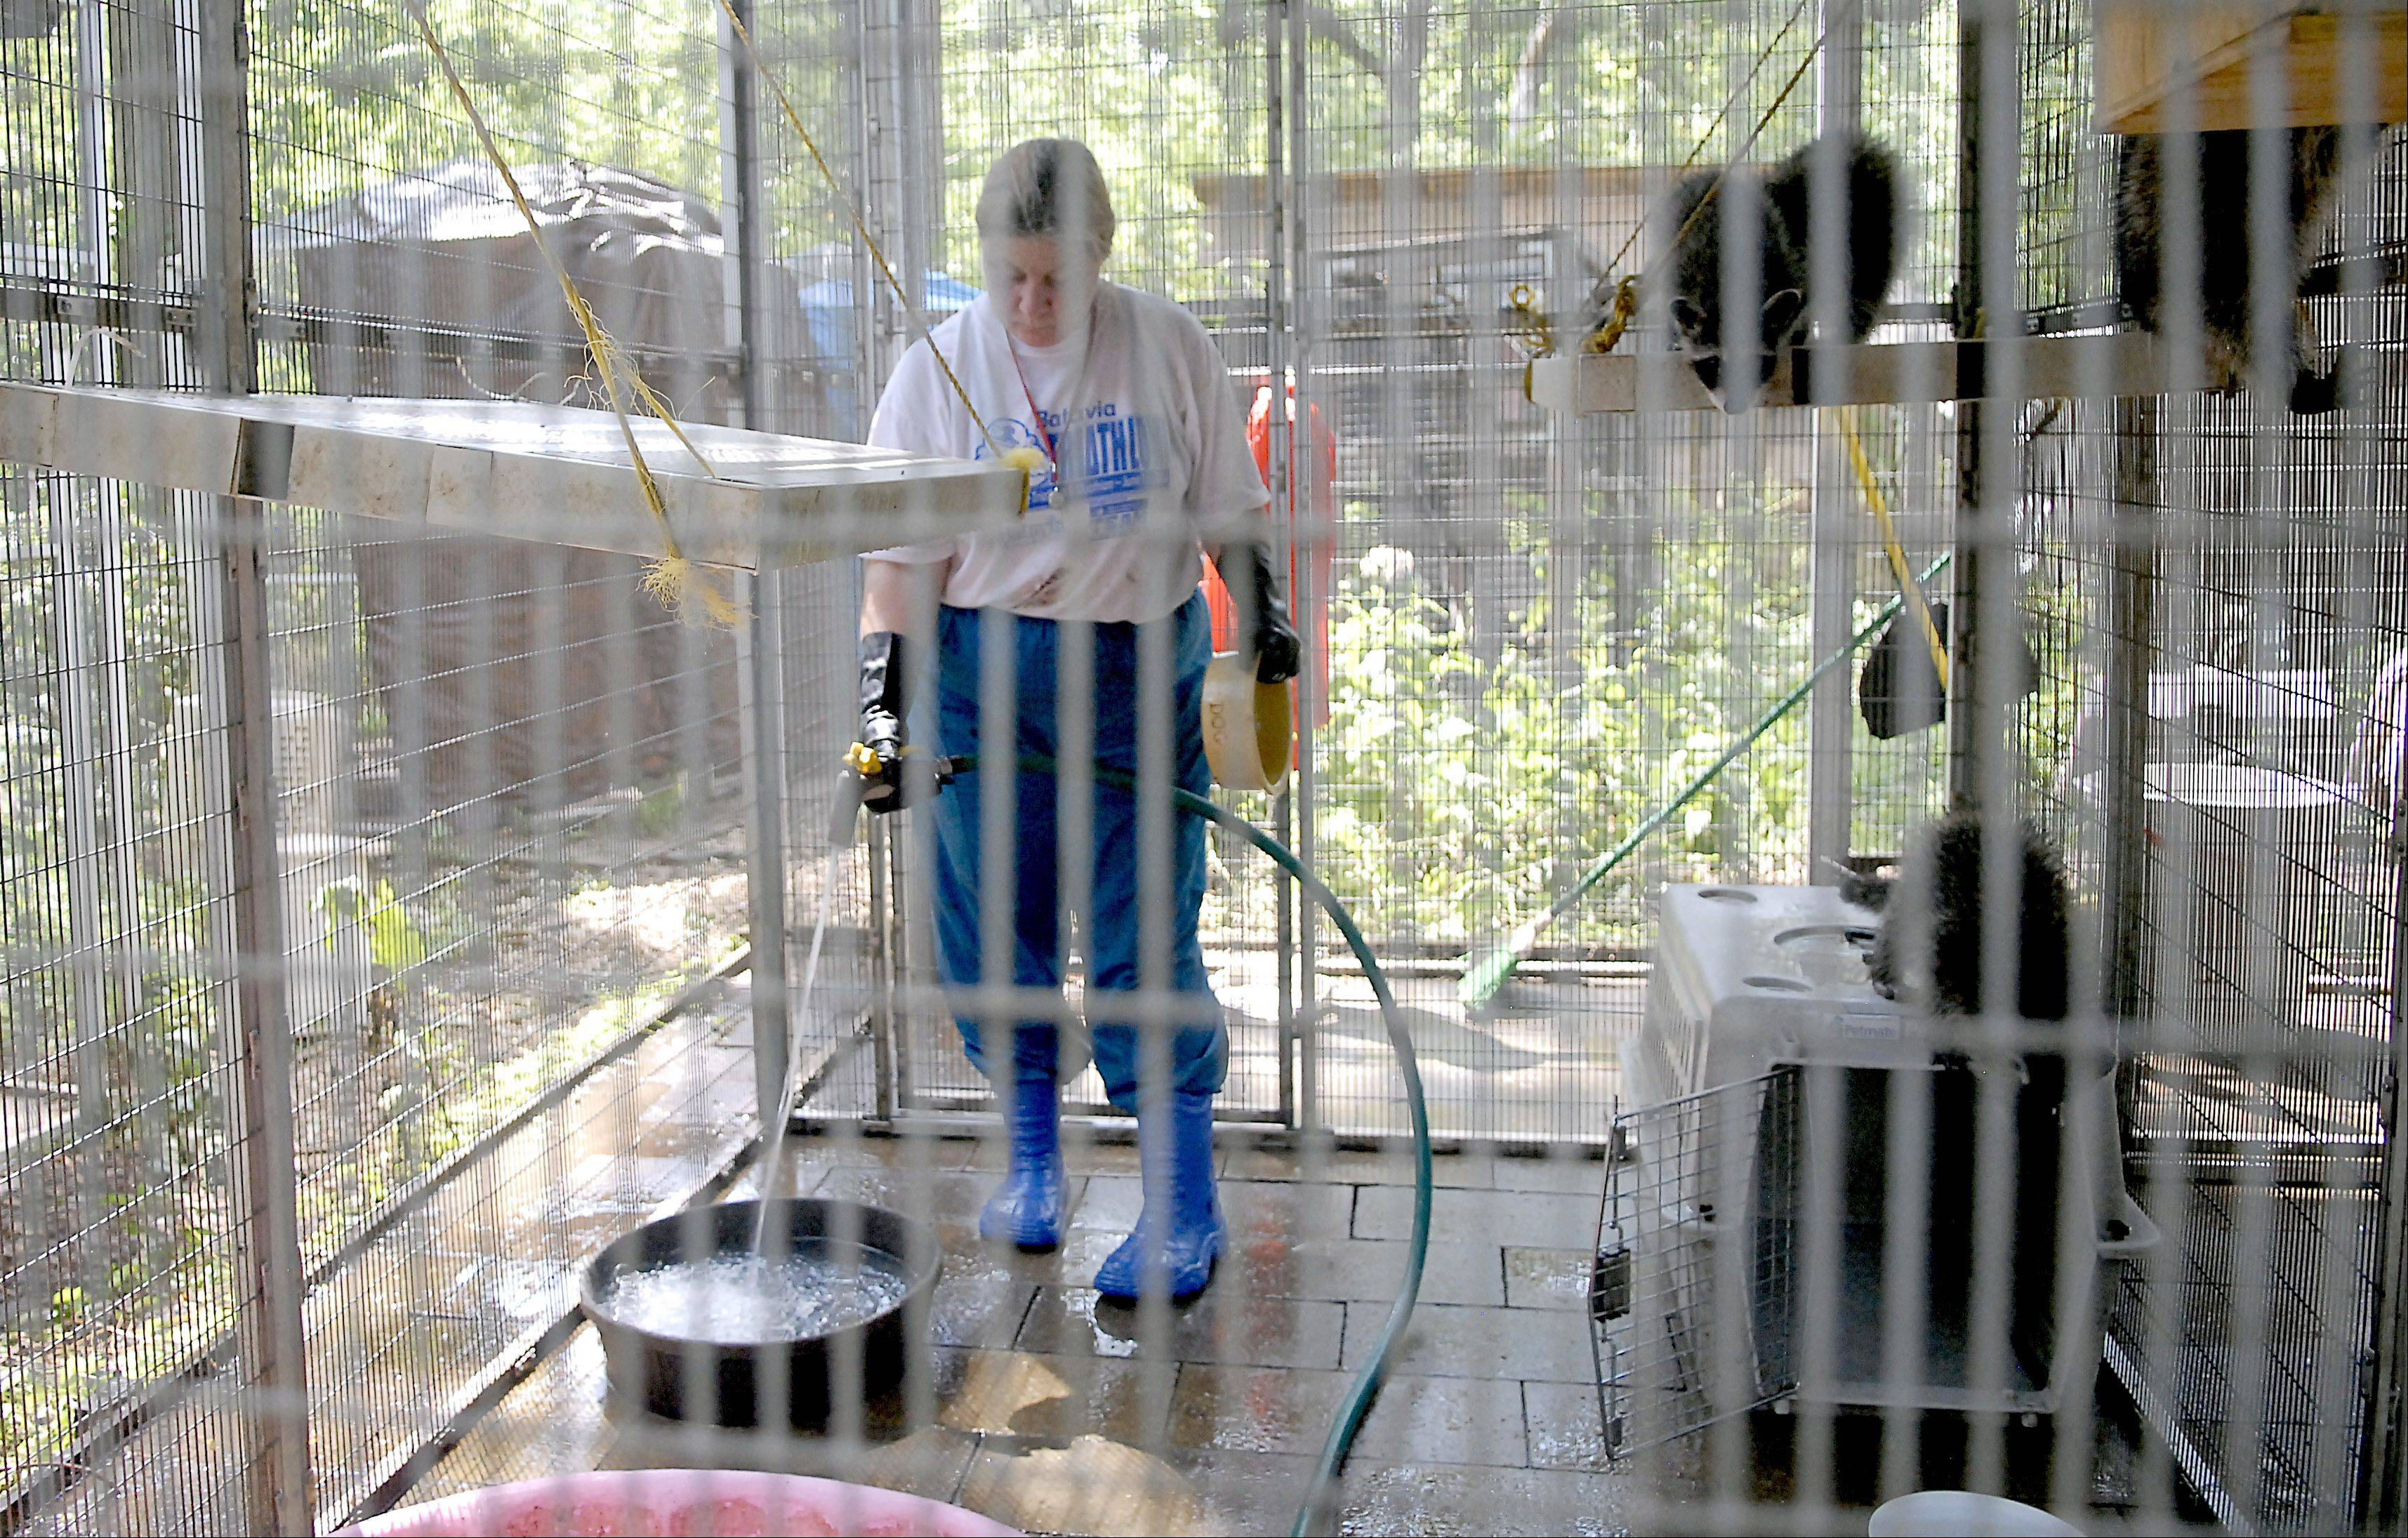 Fox Valley Wildlife Center volunteer Rena Felske of Elgin cleans the young raccoons' enclosure and refills their water bowls and swimming pool. A volunteer for the past two years, Felske enjoys working with the animals in the outside enclosures, especially the raccoons.